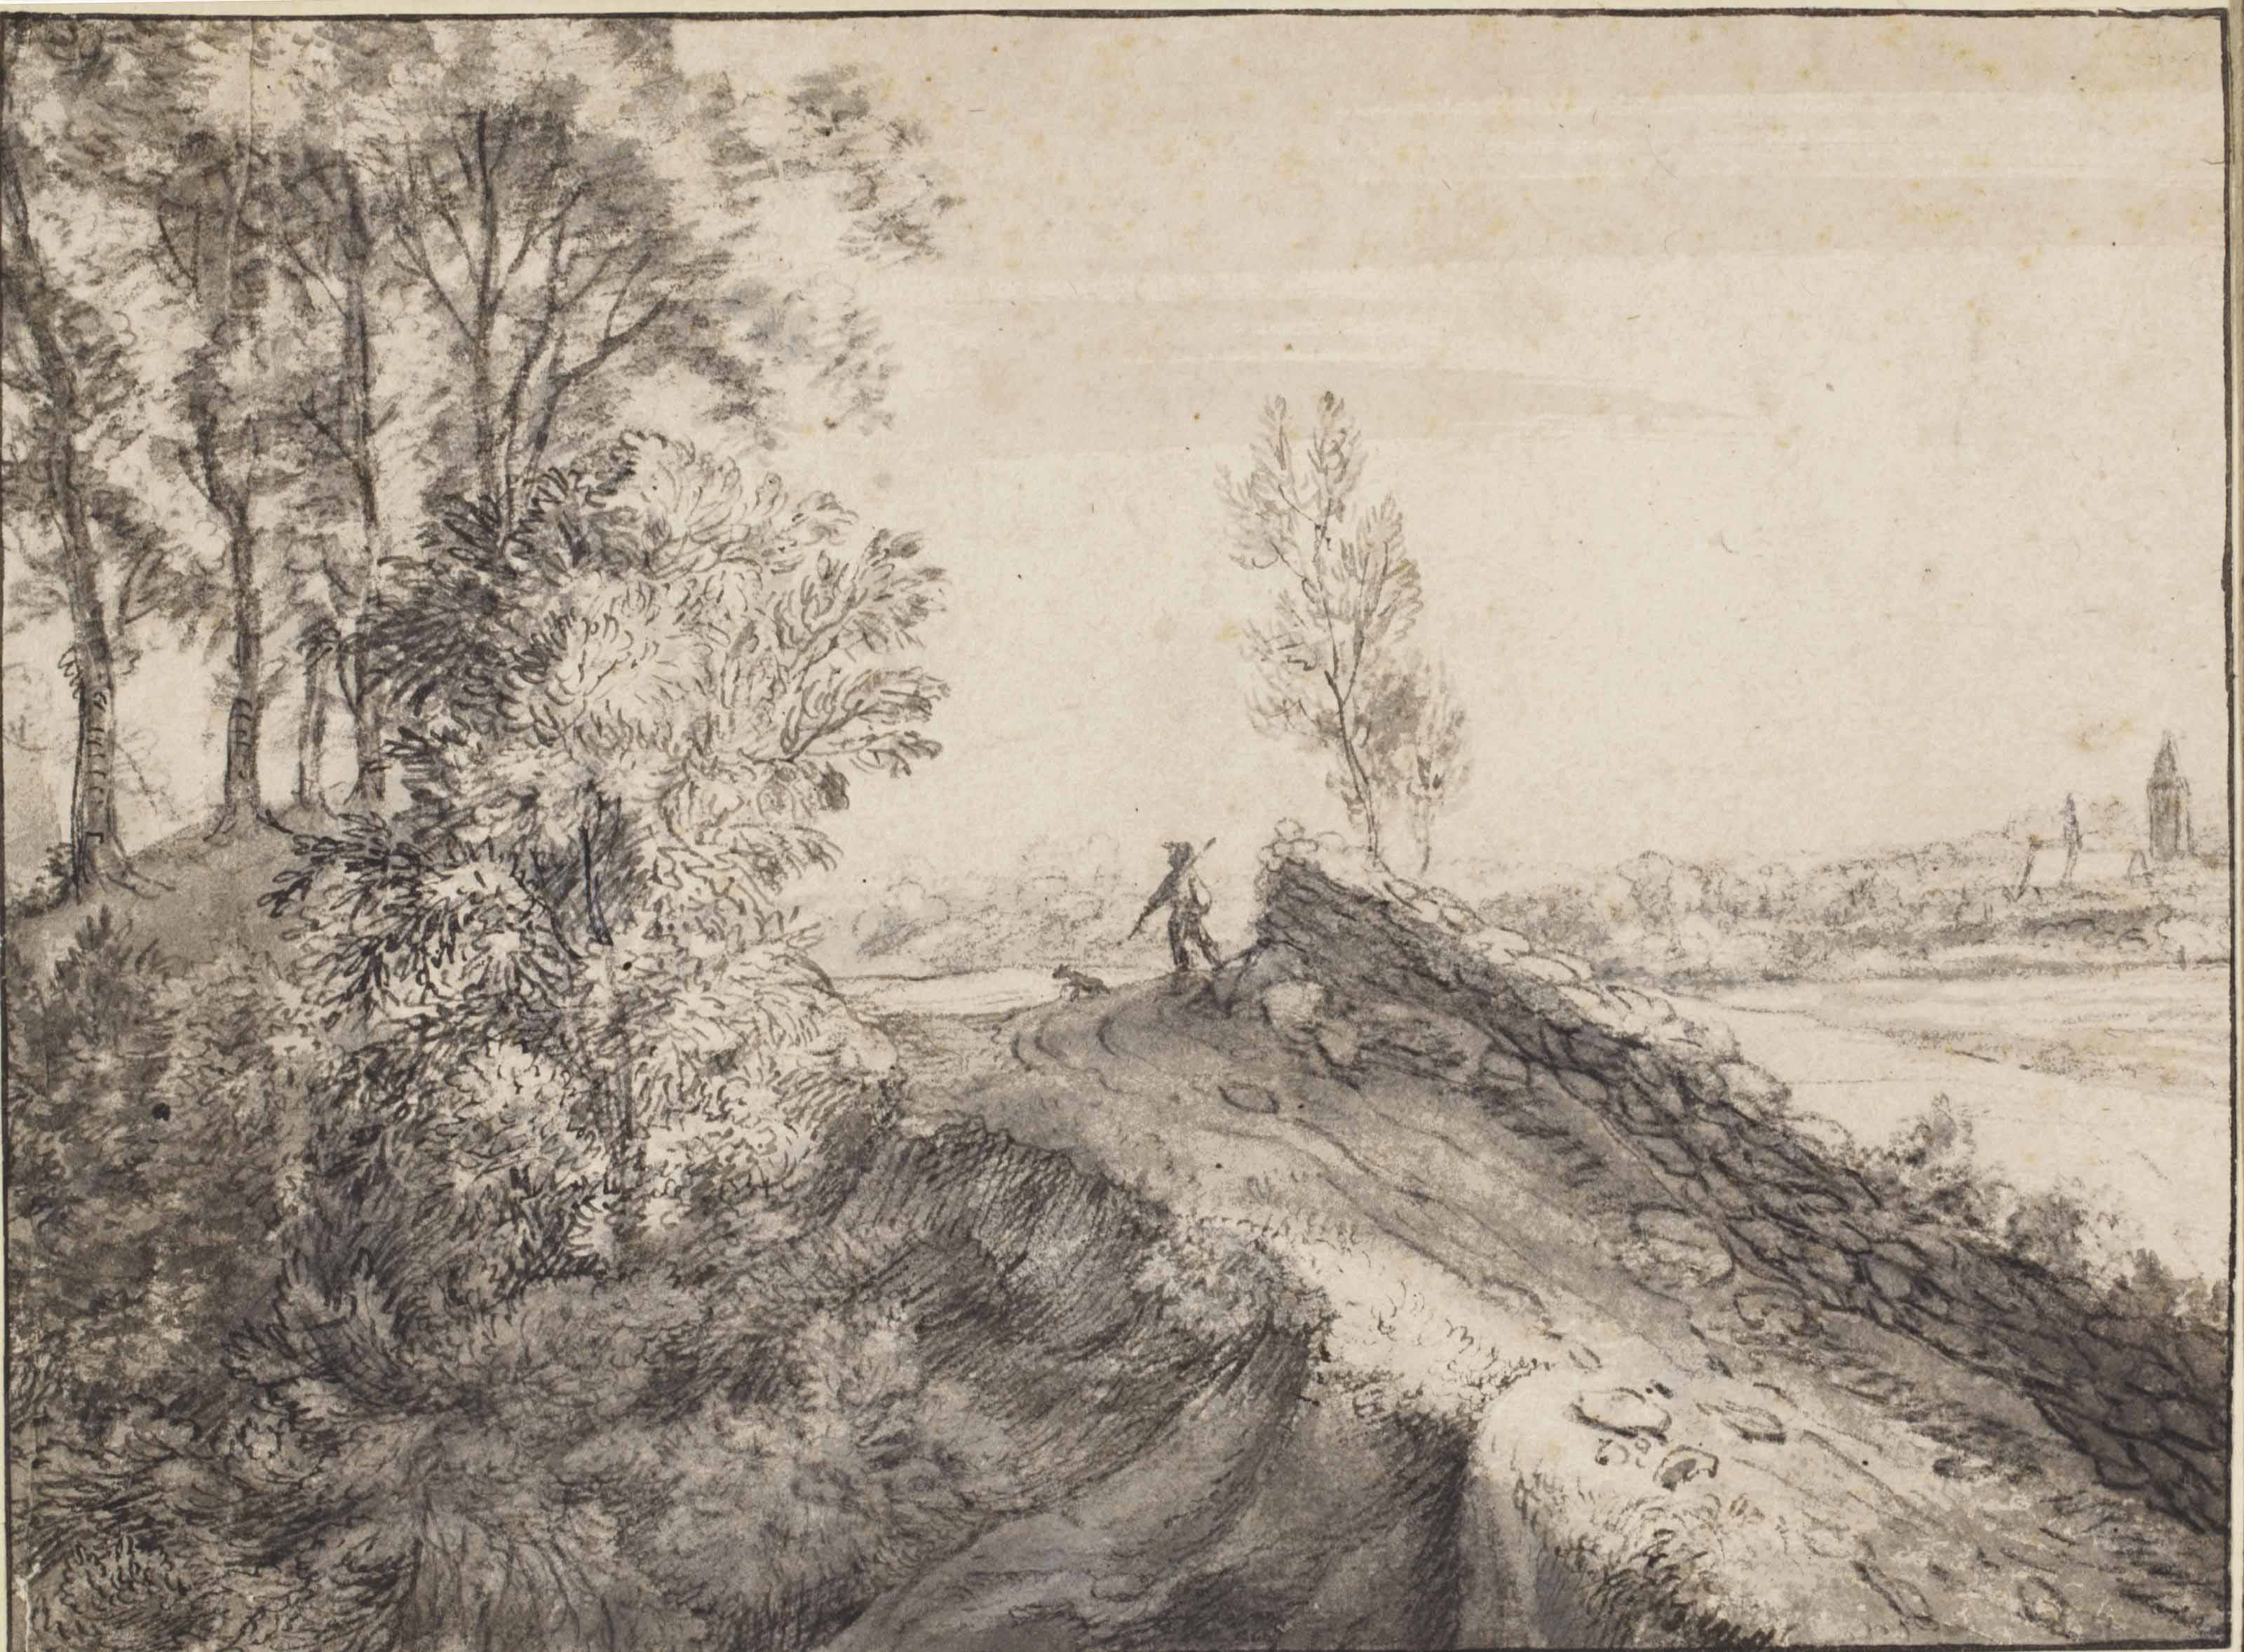 A man and a dog on a path in a wooded pastoral landscape